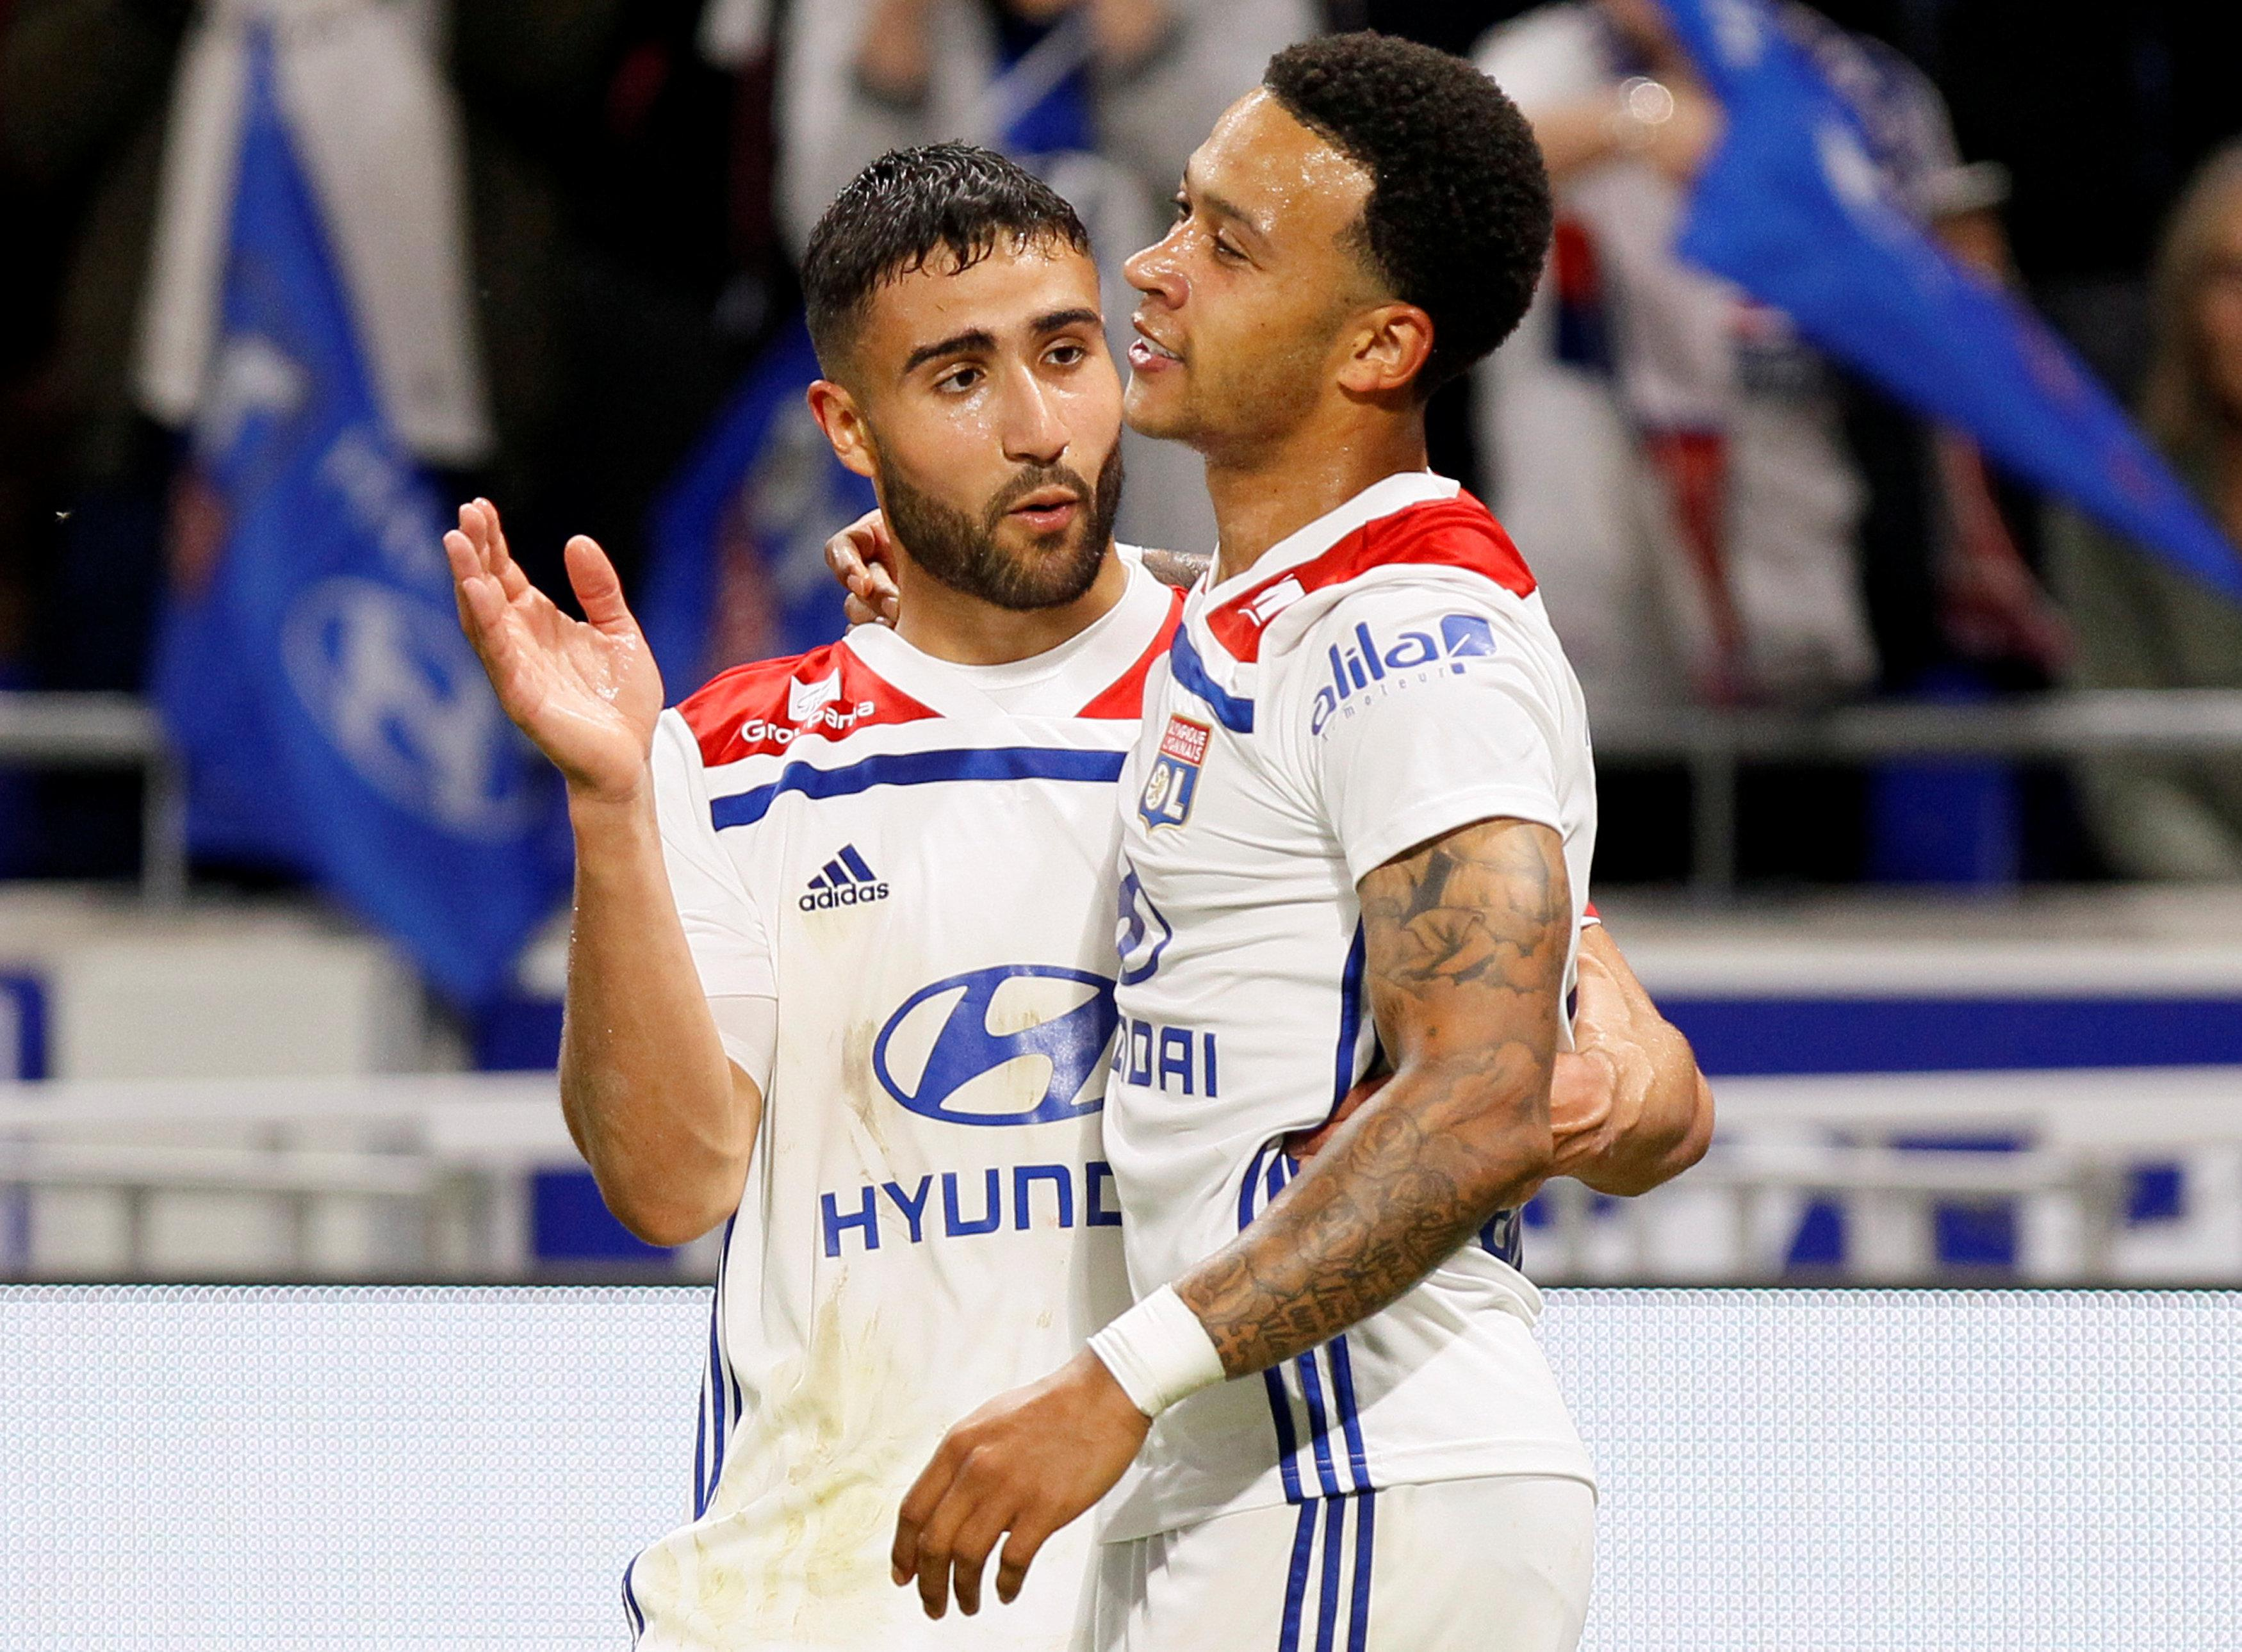 Memphis Depay moved to Lyon last year and has formed a deadly partnership with Nabil Fekir